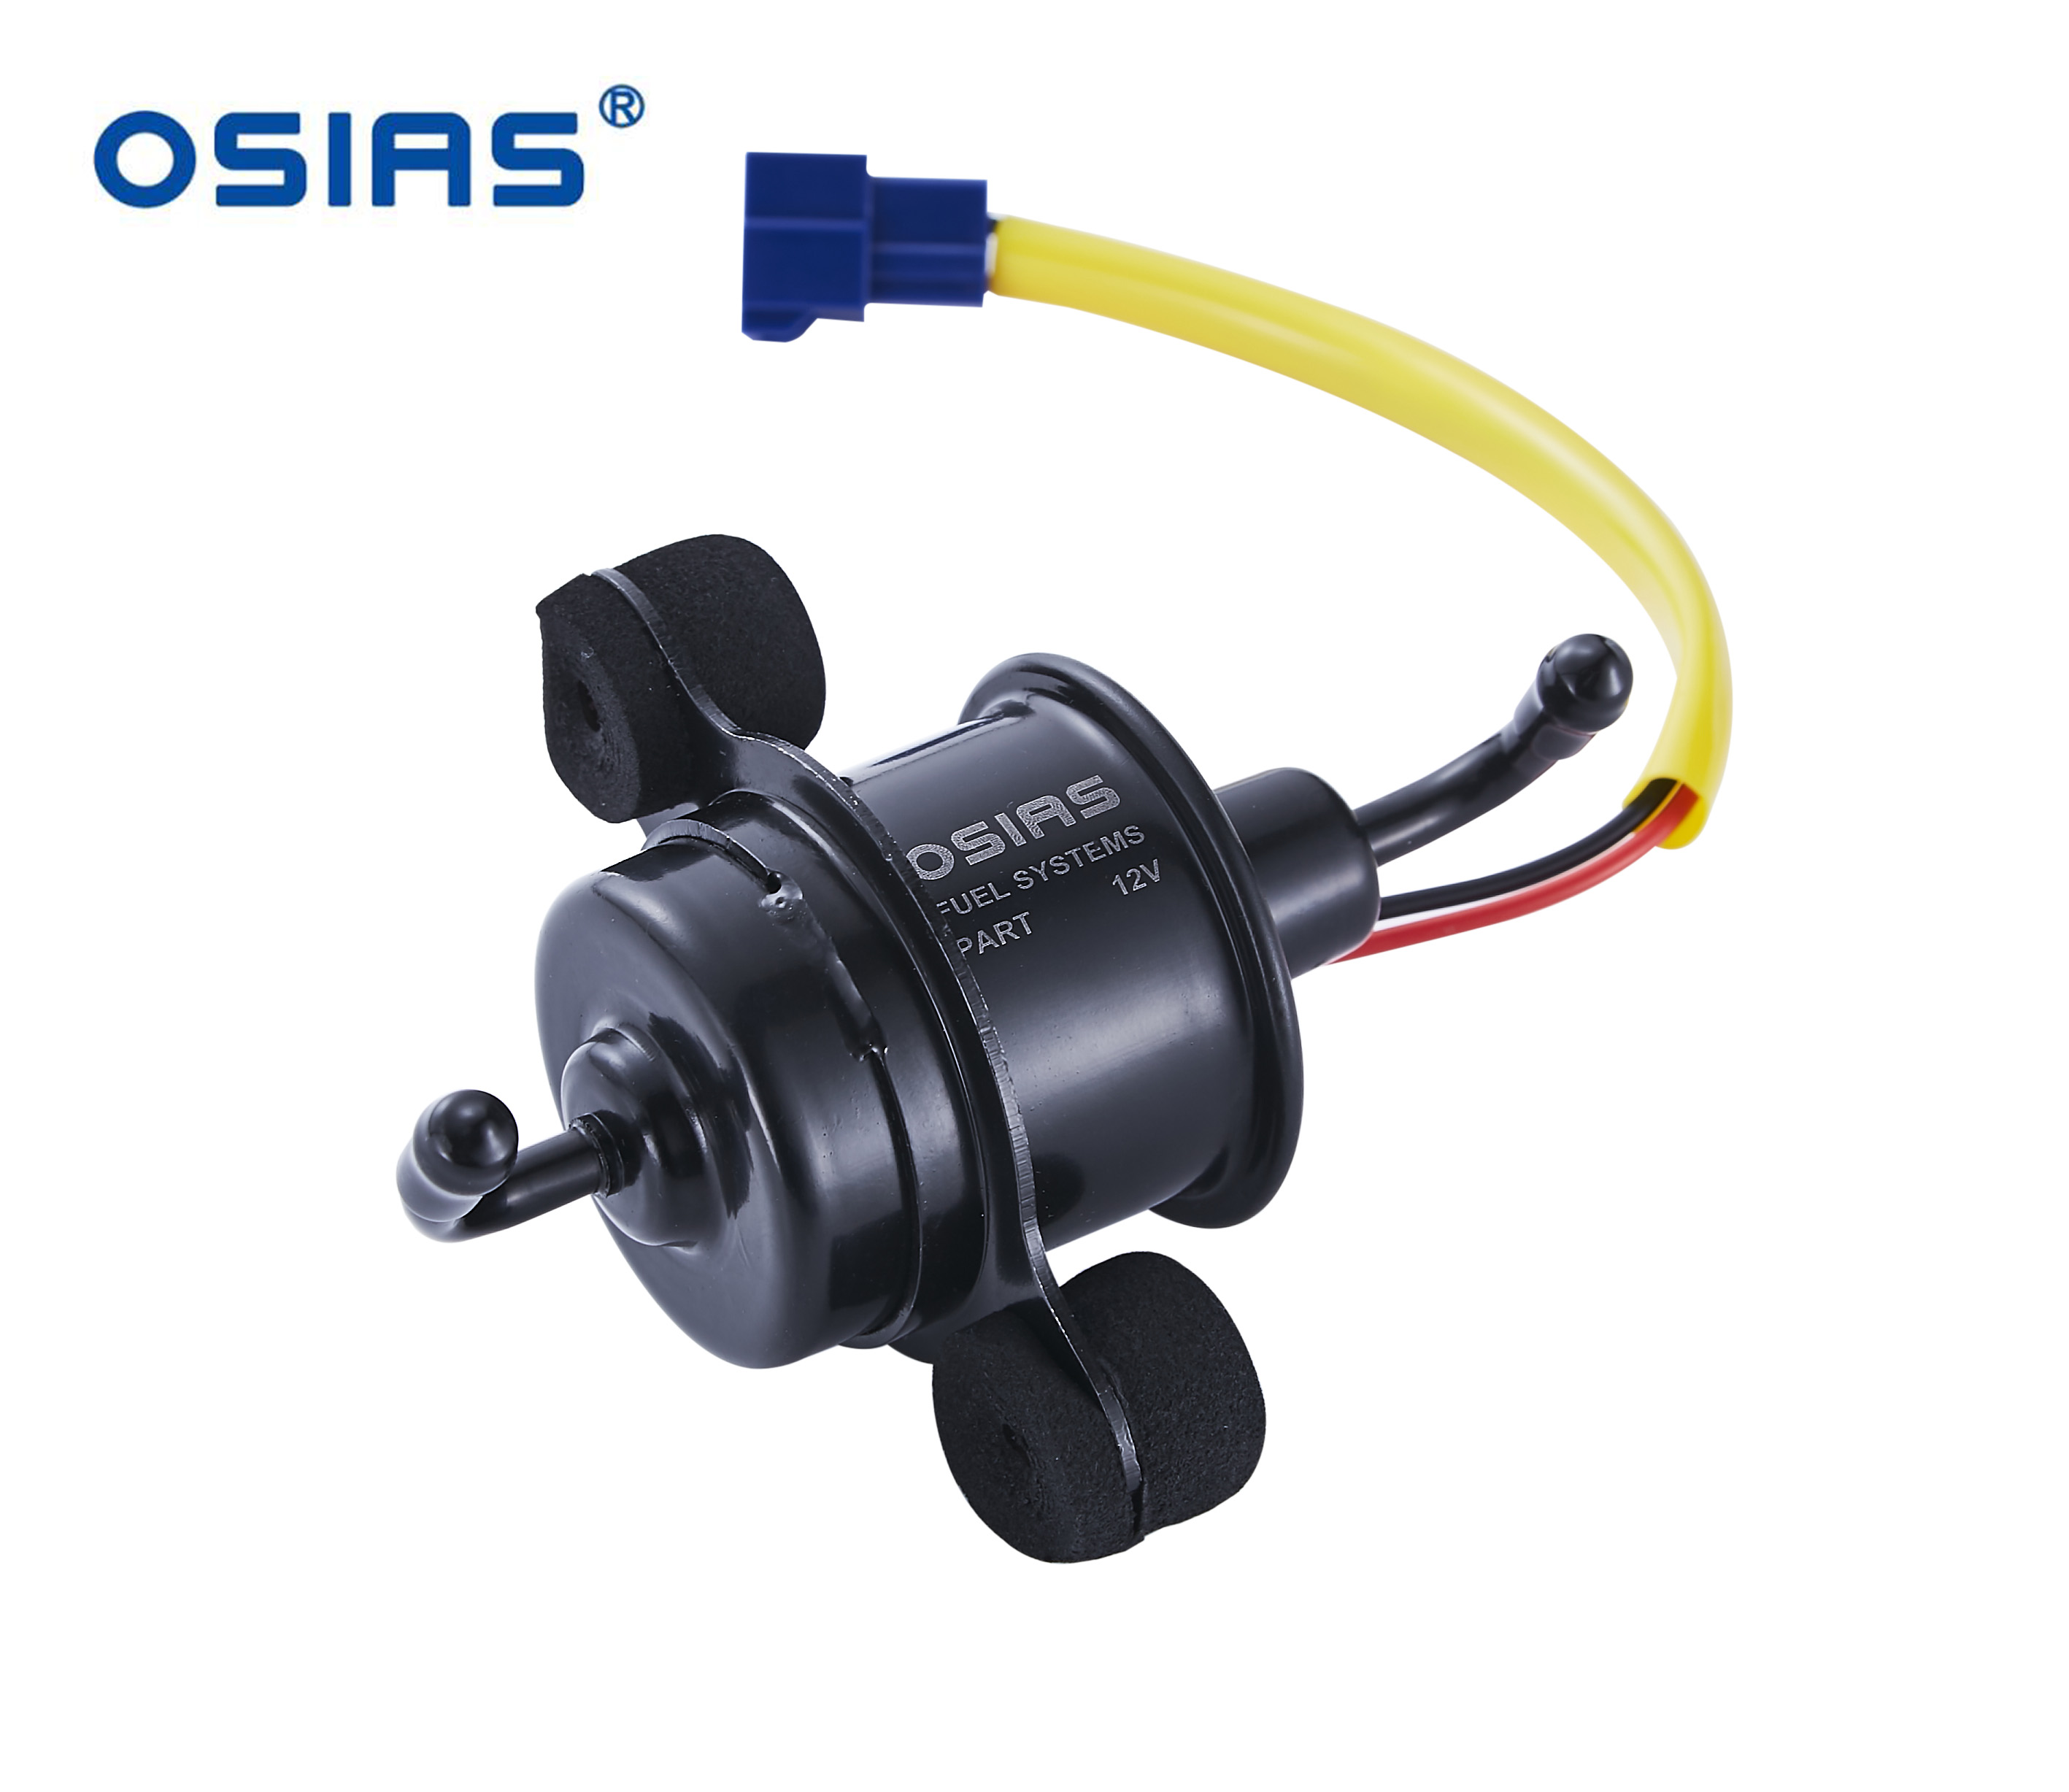 OSIAS External Rear Fuel Diesel Pump For Nissan X-Trail 2.2 DCI 2001-2007 Free Shipping From UK/China(China)